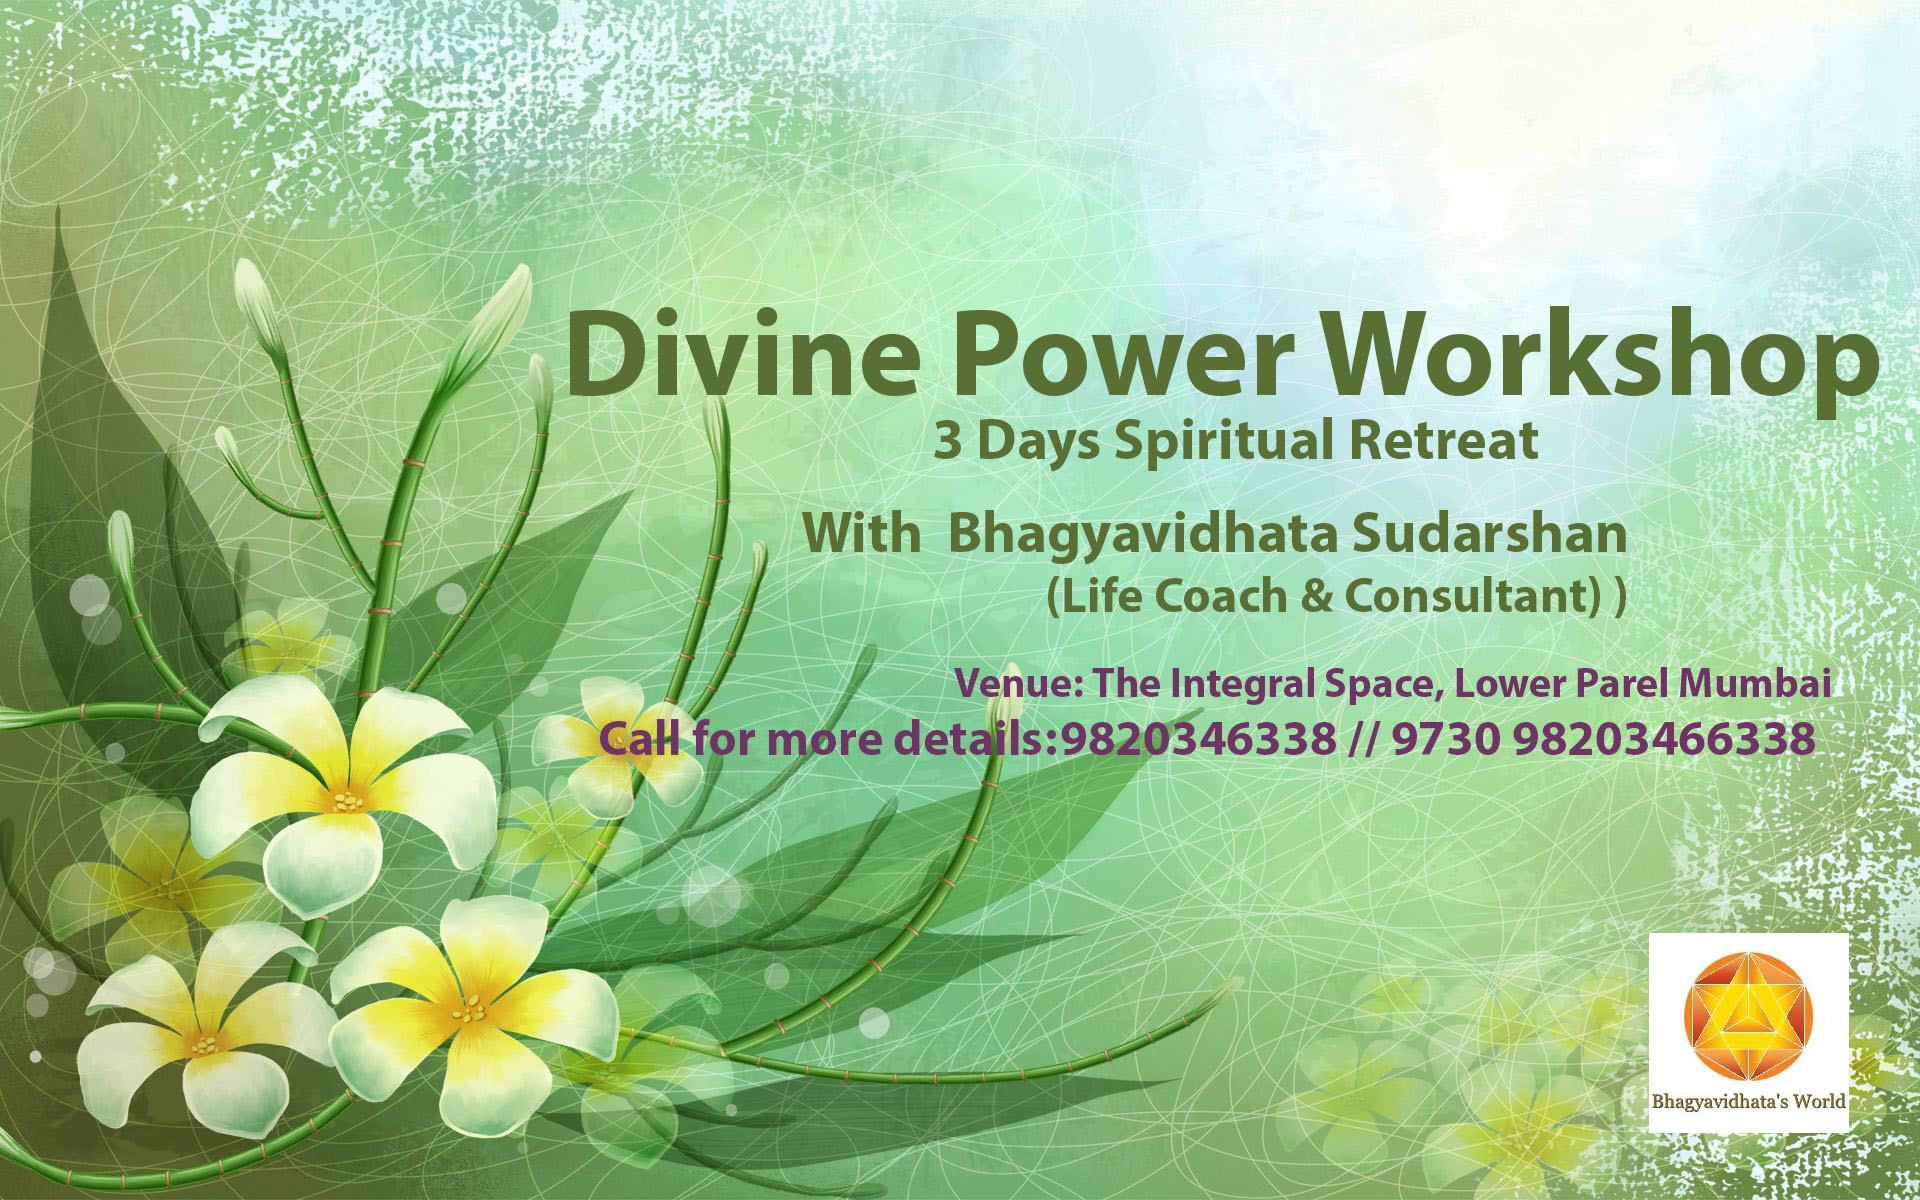 Divine Power Workshop - 3 Days Spiritual Retreat.......